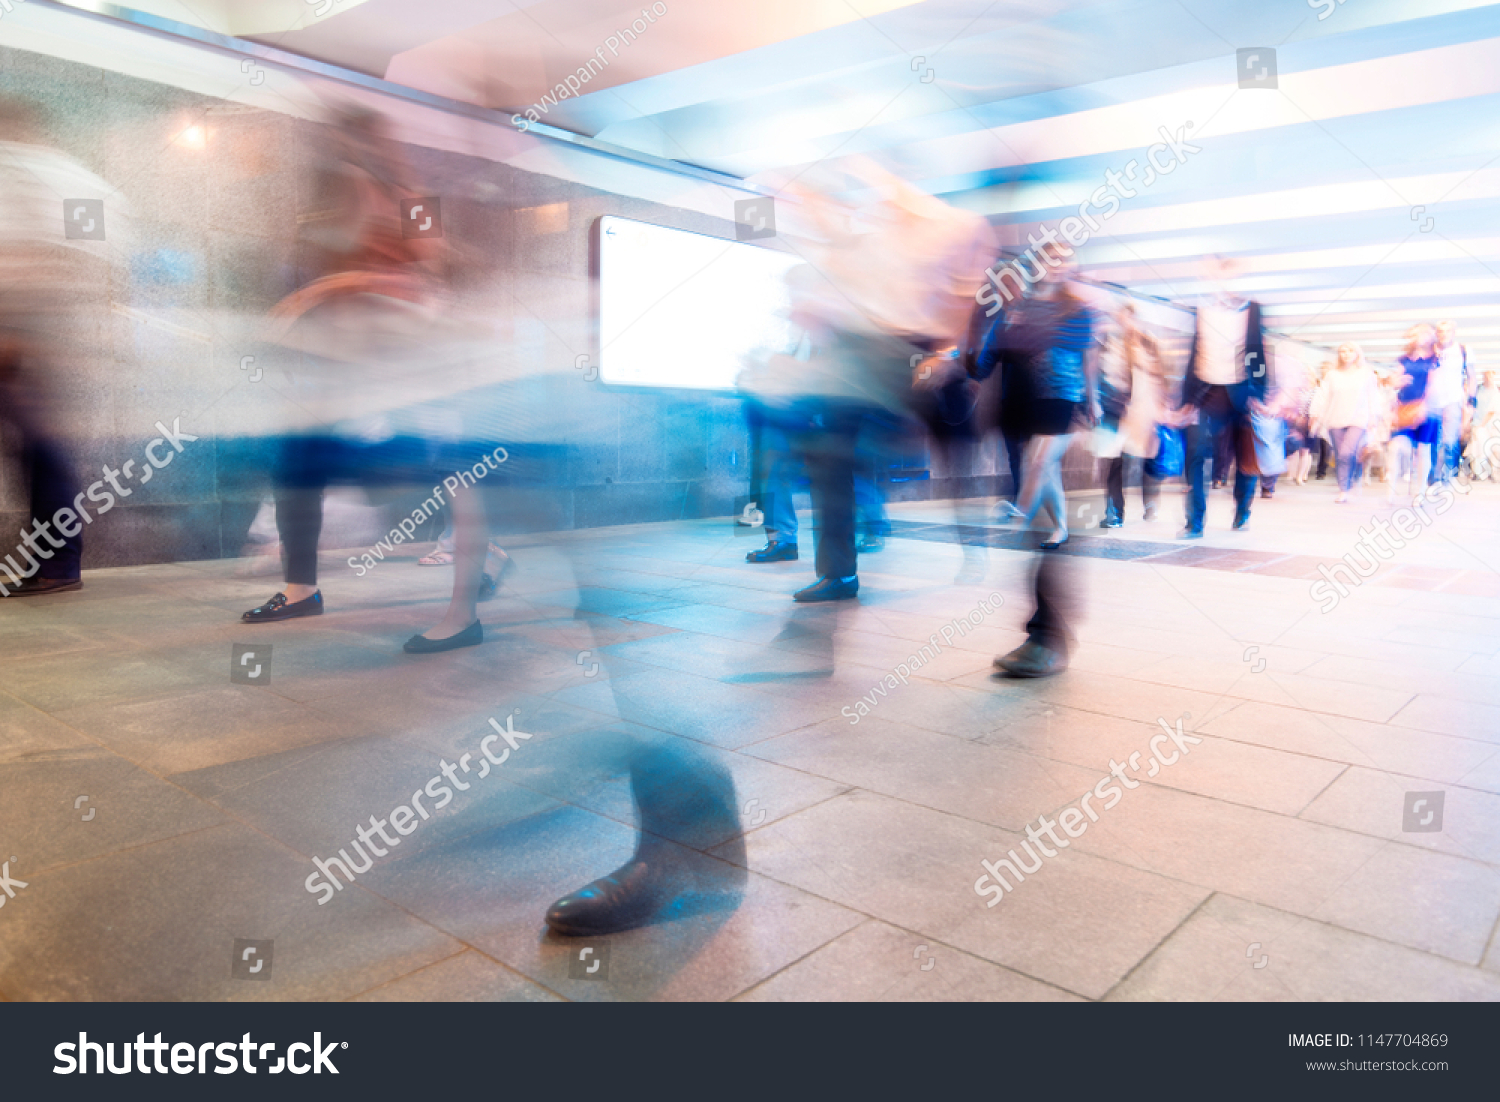 Crowd of People as Pedestrians in Metro, blurred Picture as Background #1147704869